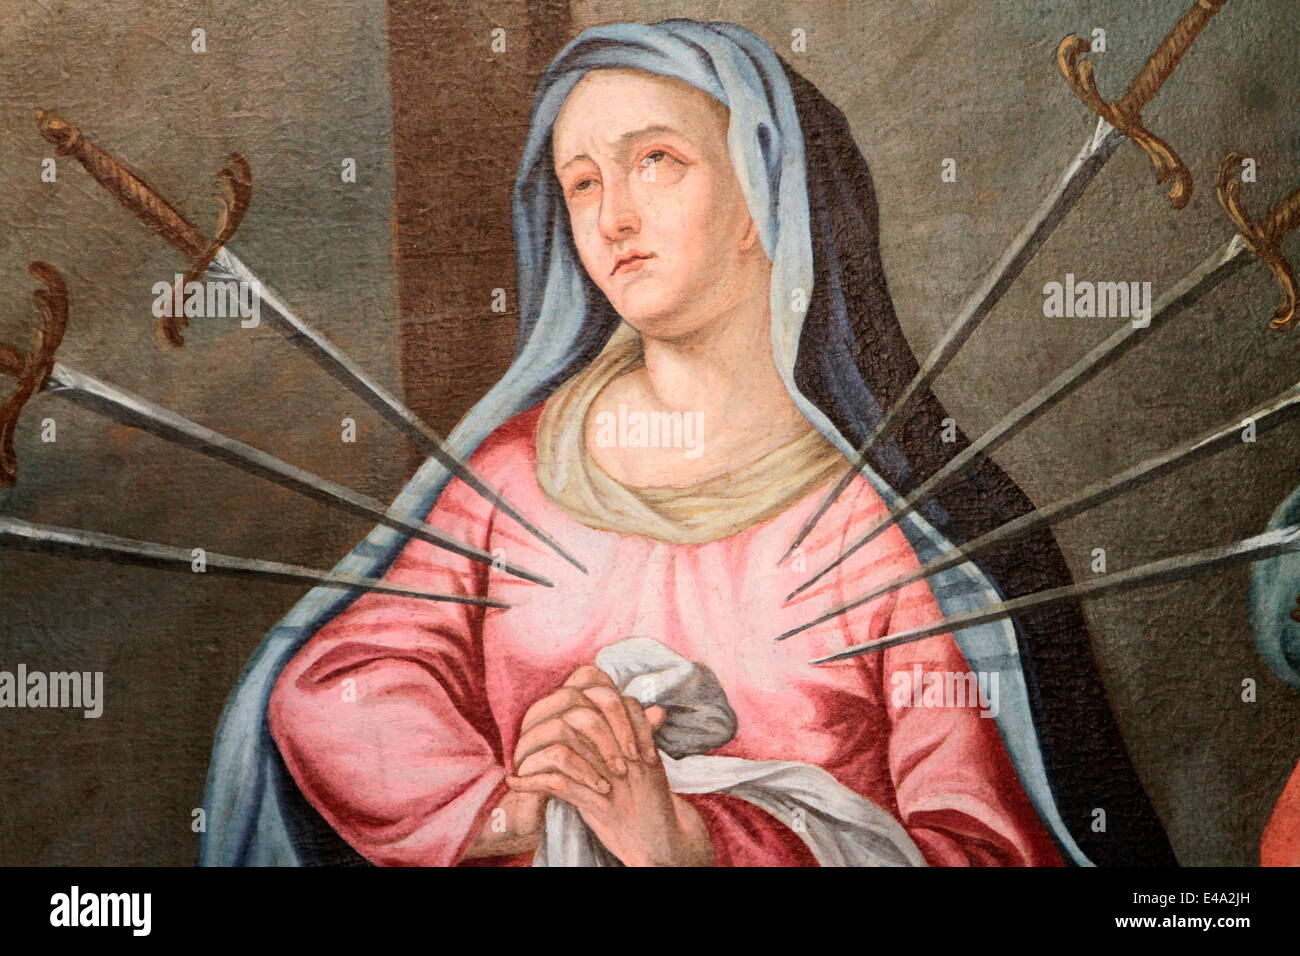 Virgin Mary, The Seven Sorrows,. Our Lady of the Assumption church, Cordon, Haute-Savoie, France, Europe Stock Photo